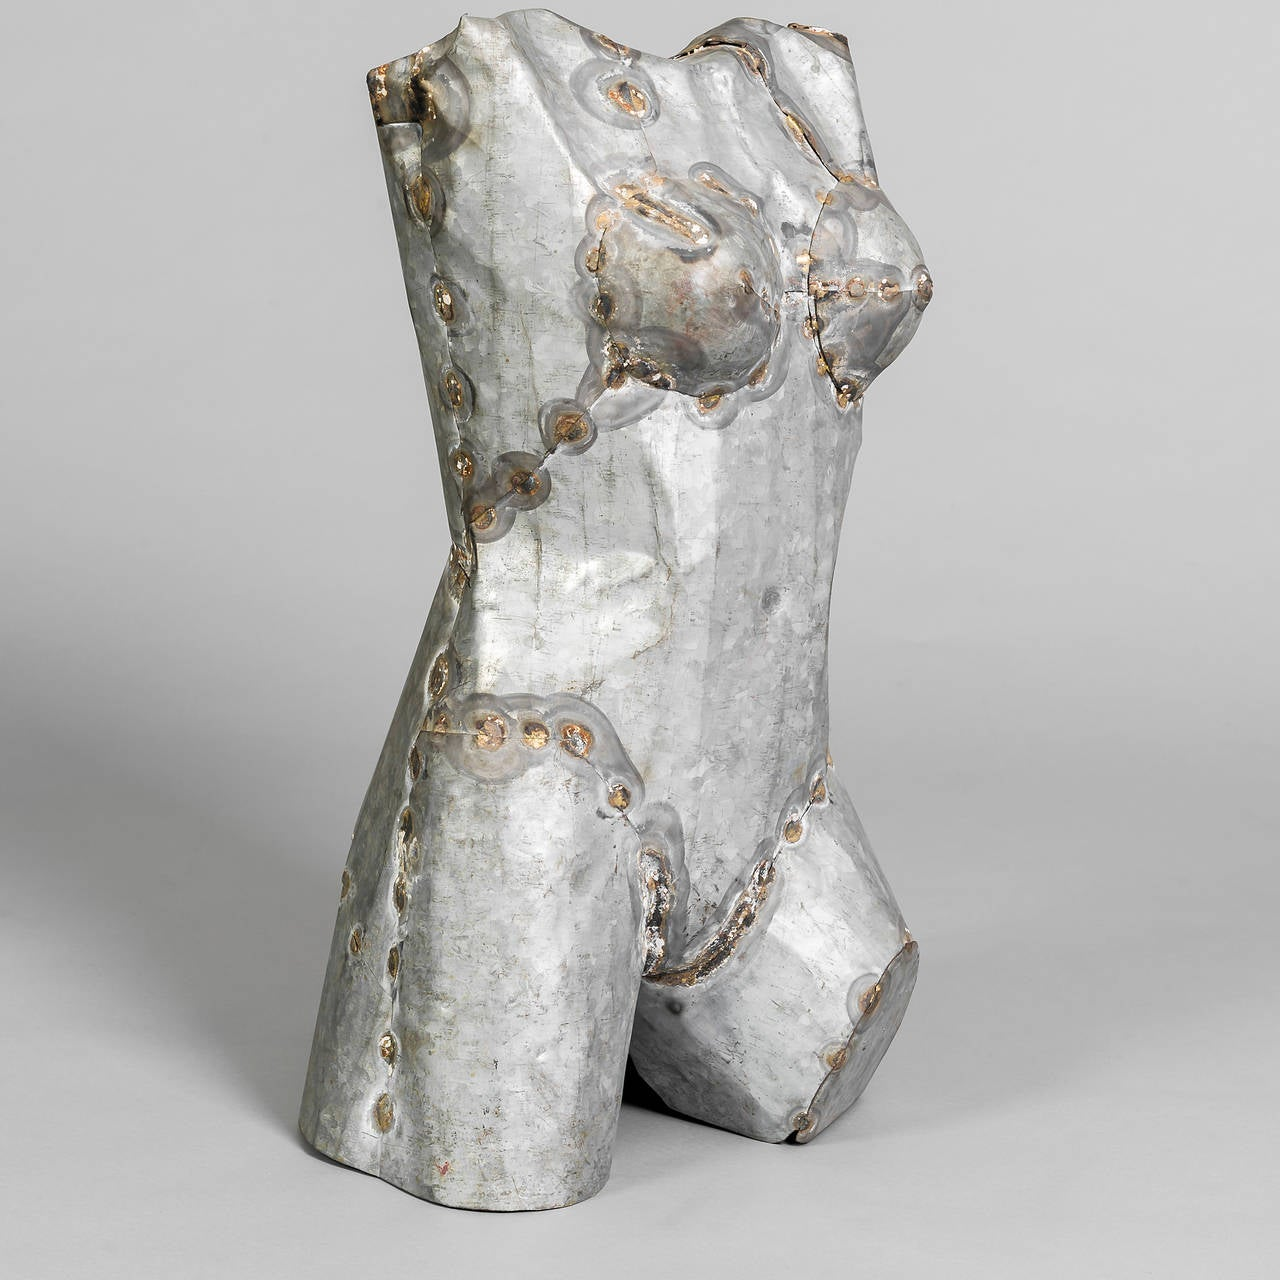 Pair of Torso Sculptures in Zinc In Good Condition For Sale In London, GB